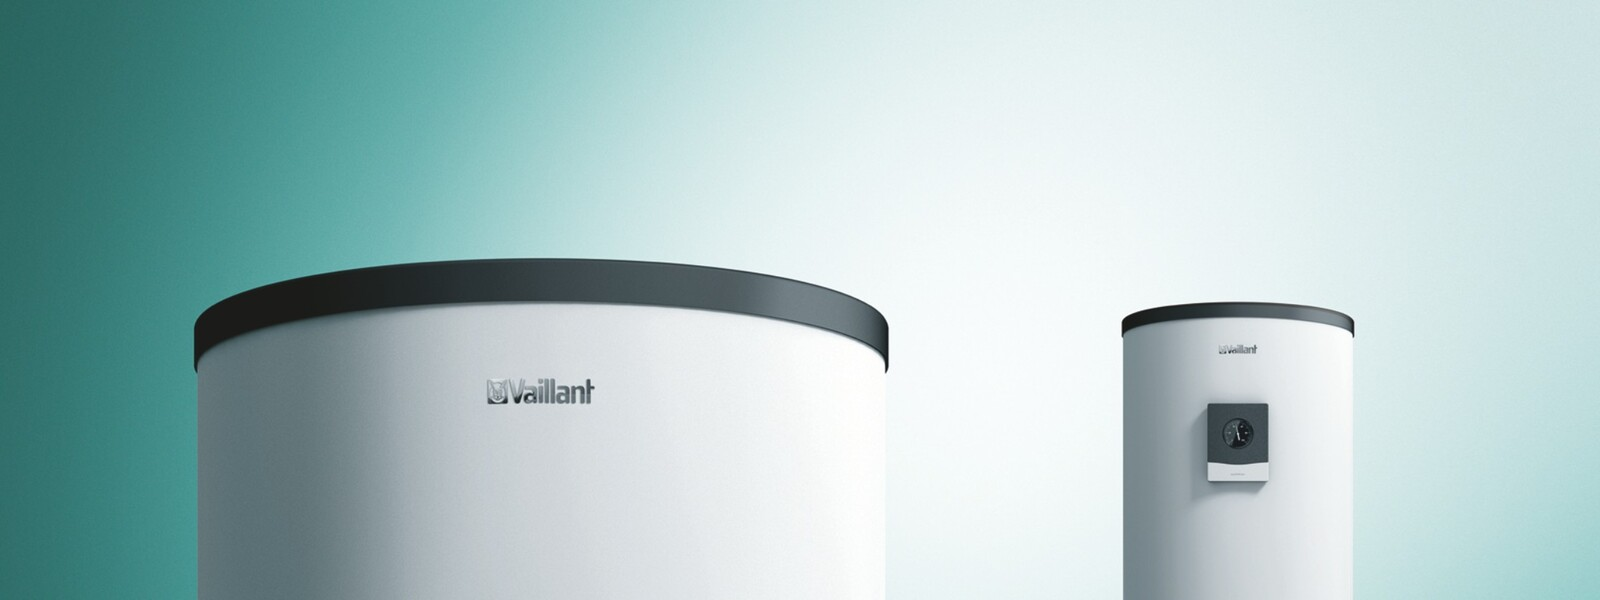 https://www.vaillant-group.com/newsroom/pressemitteilungen/2017/ish-2017/warmwasserspeicher/warmwasserspeicher-mit-green-iq-label-941242-format-24-9@1600@desktop.jpg